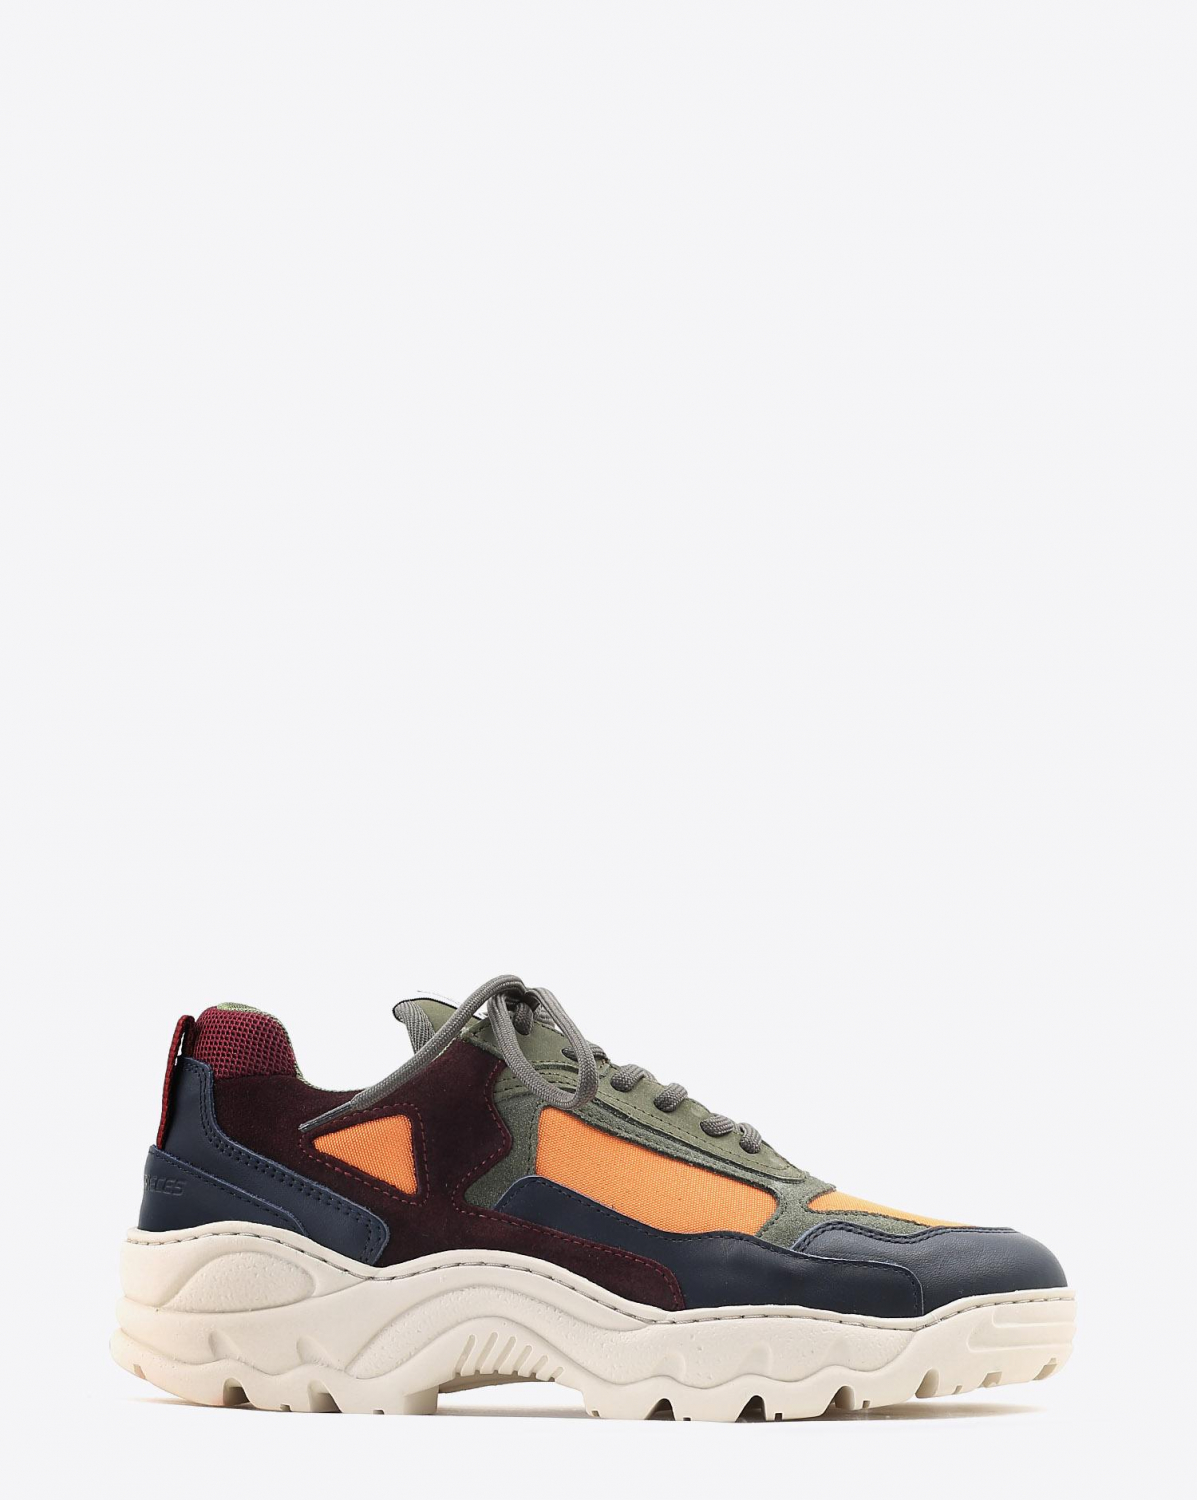 Filling Pieces Low Curve Iceman Trimix - Army Green - Femme